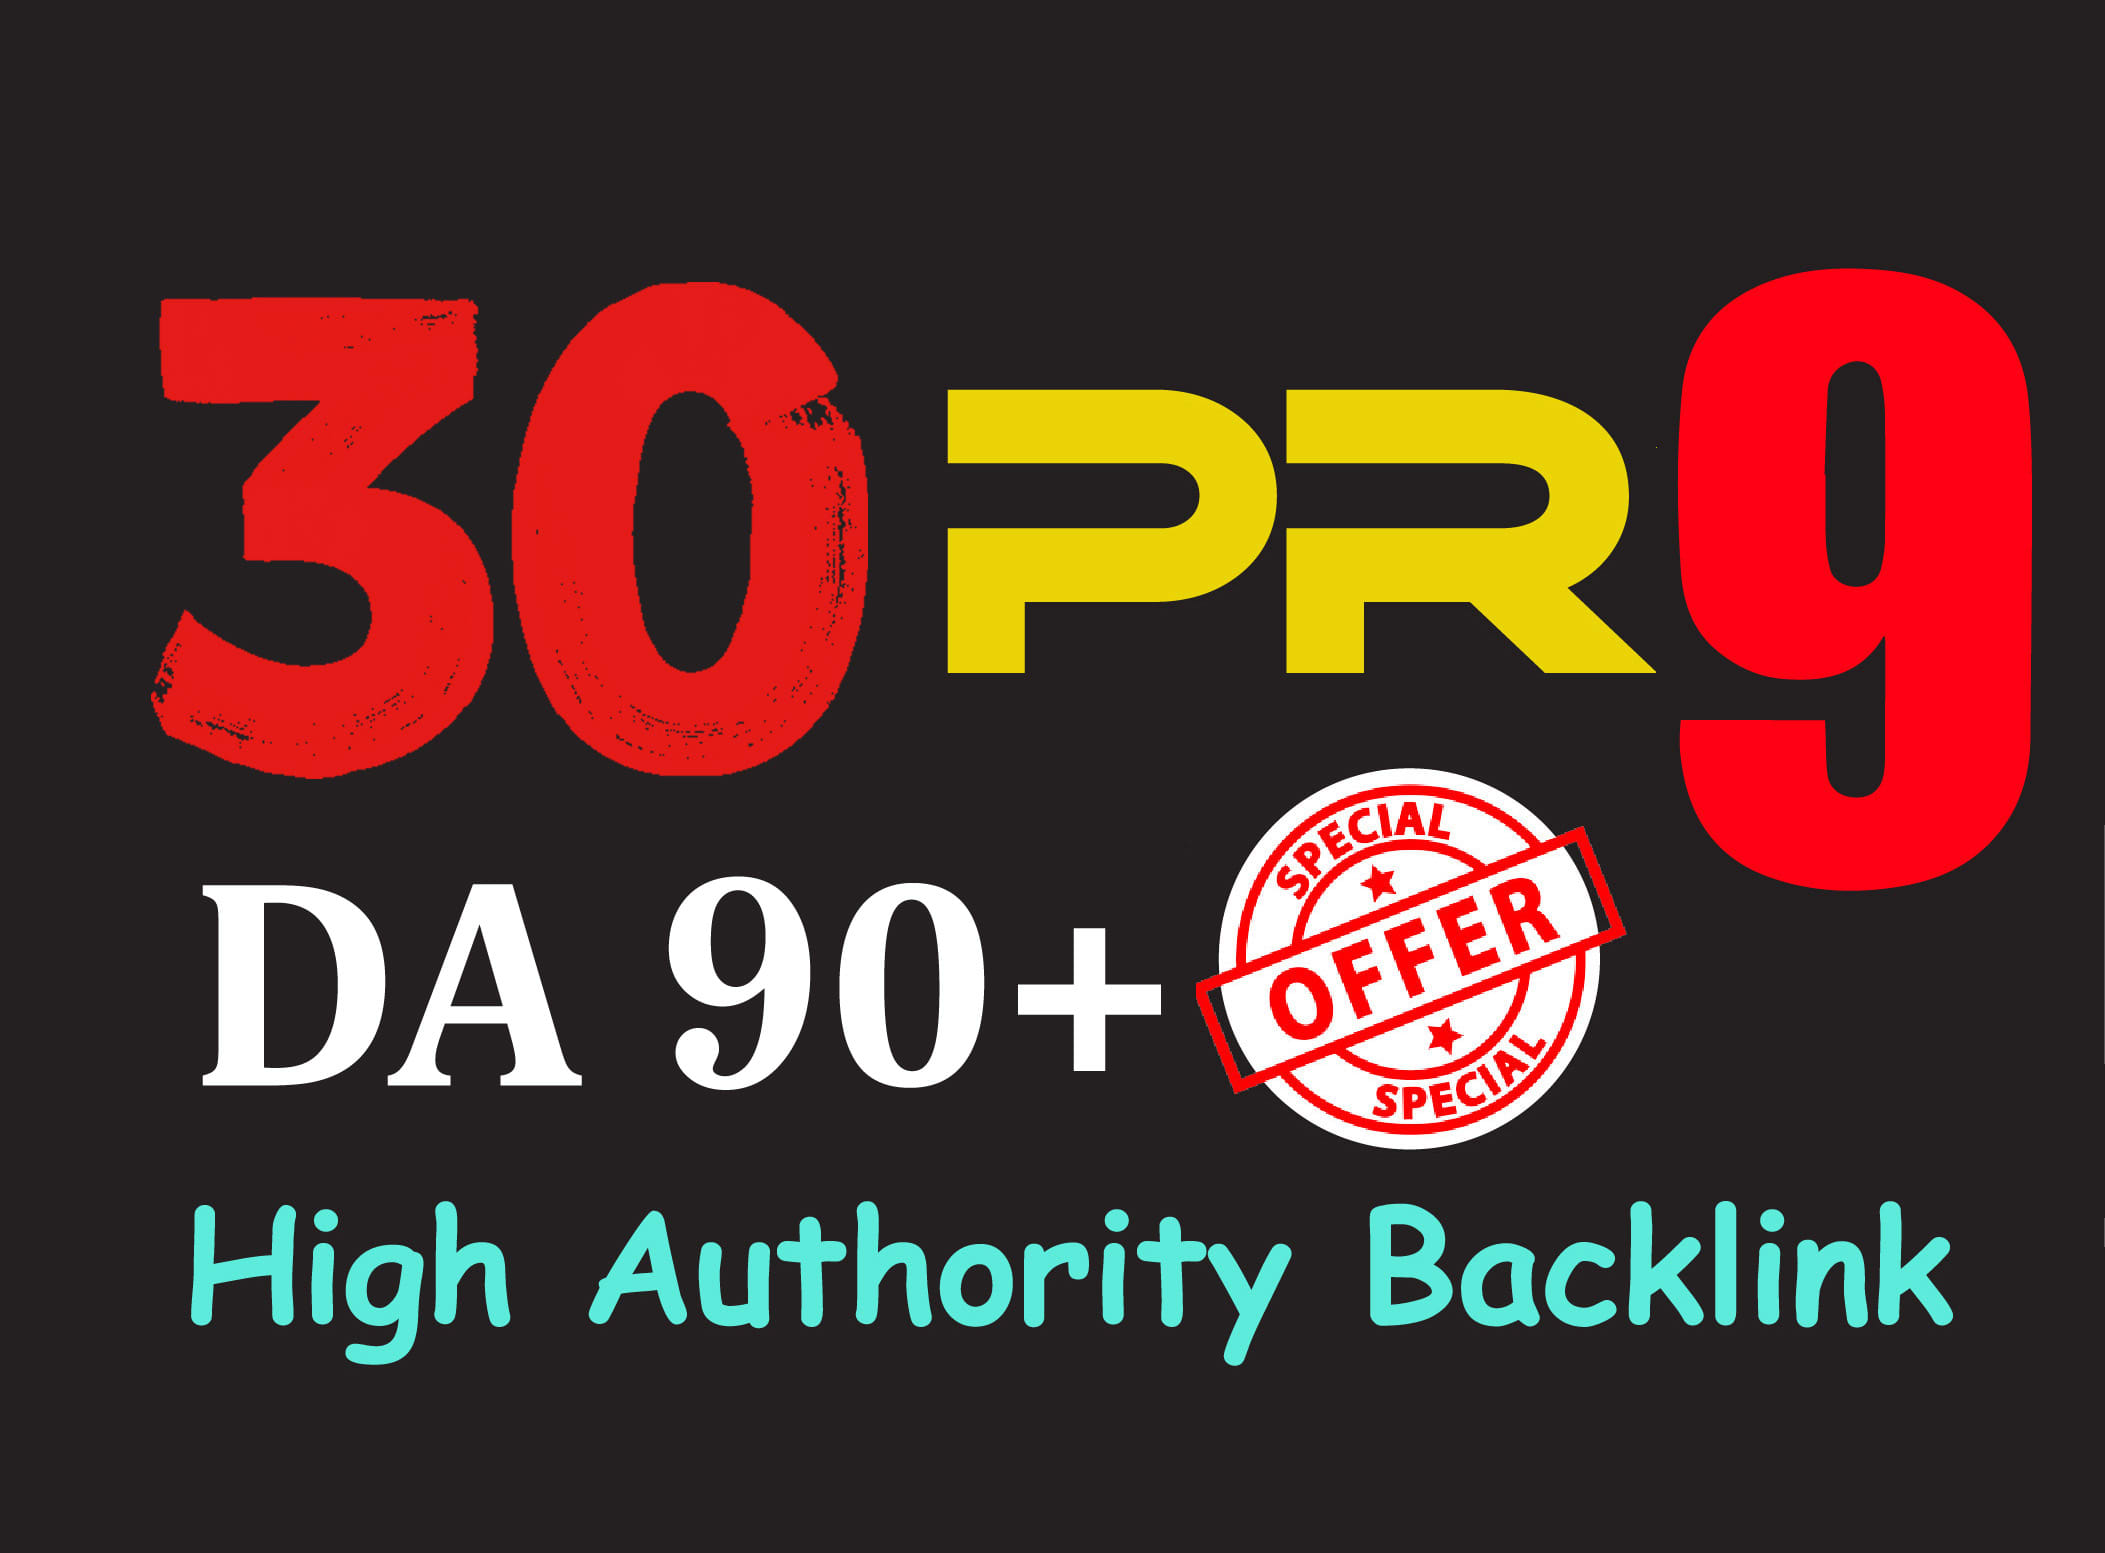 I Will Do Manually 30 pr9 DA 90+ Safe SEO 30+Domain High Authority Backlinks